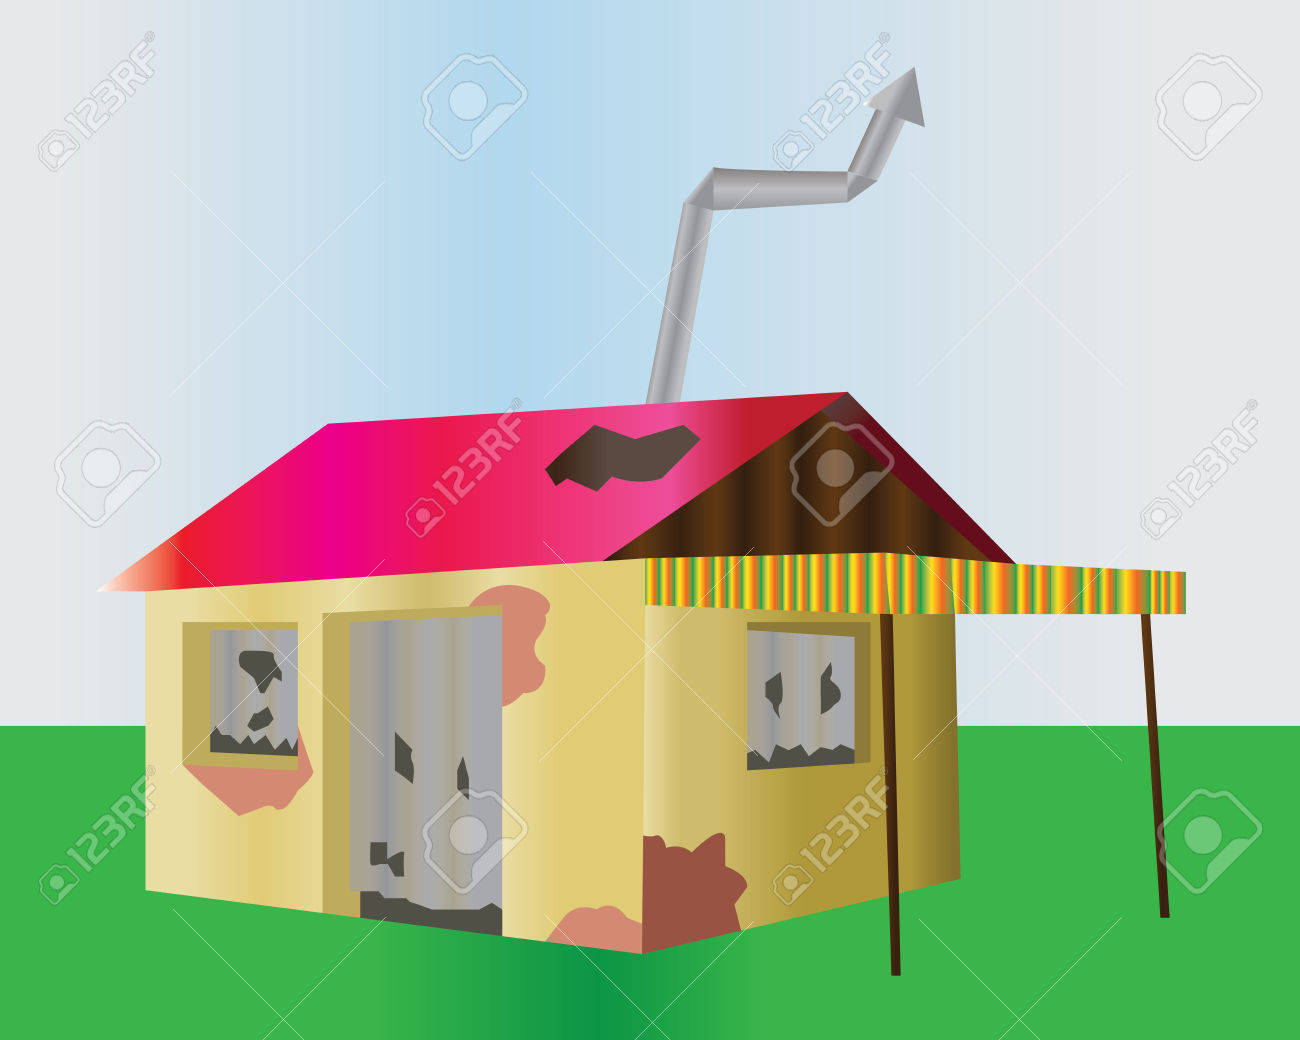 Ruined One Floor House. Damaged Building Illustration. Old Home.